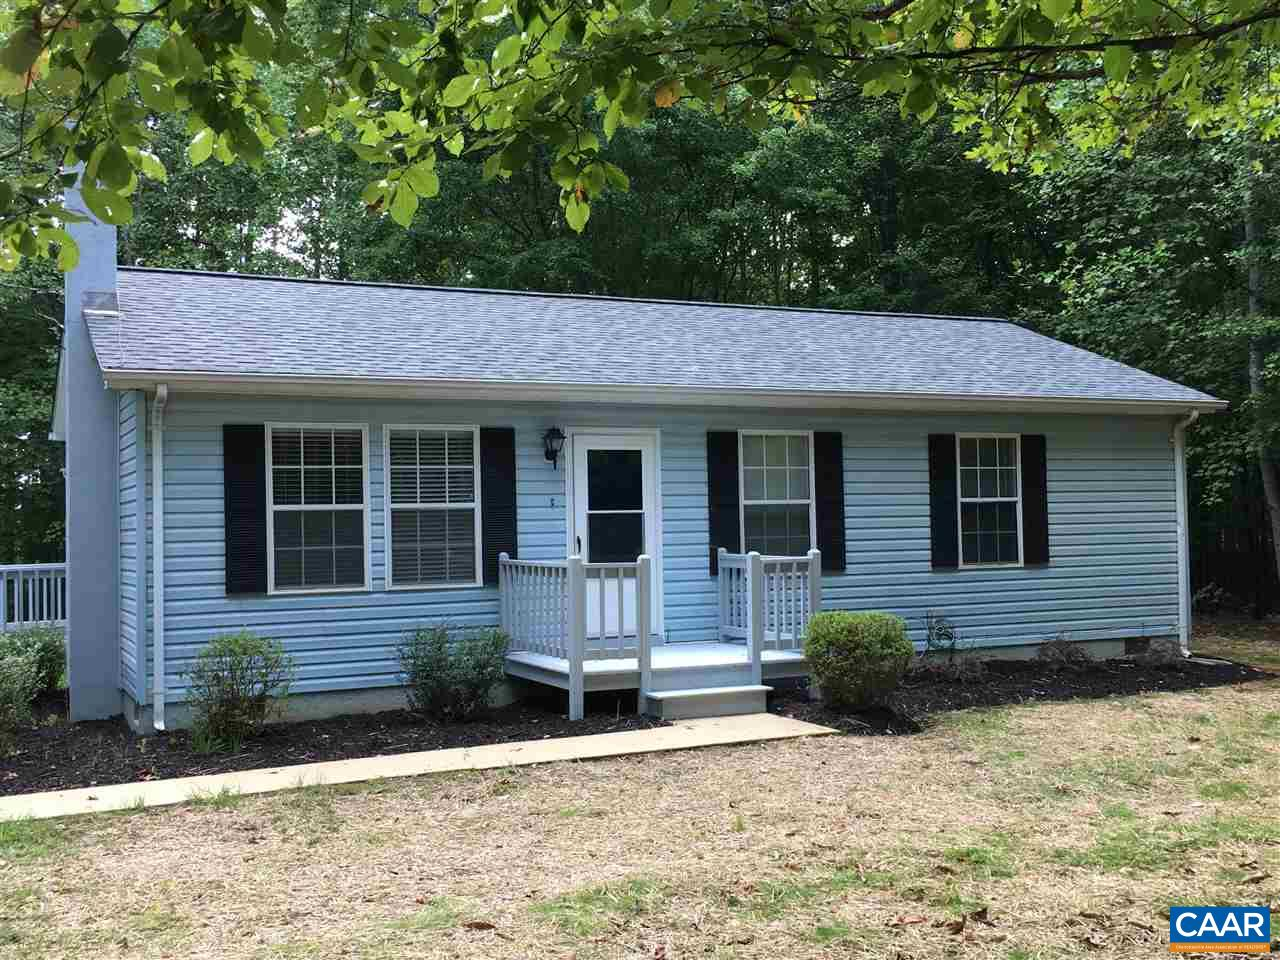 home for sale , MLS #566991, 763 Hollands Rd